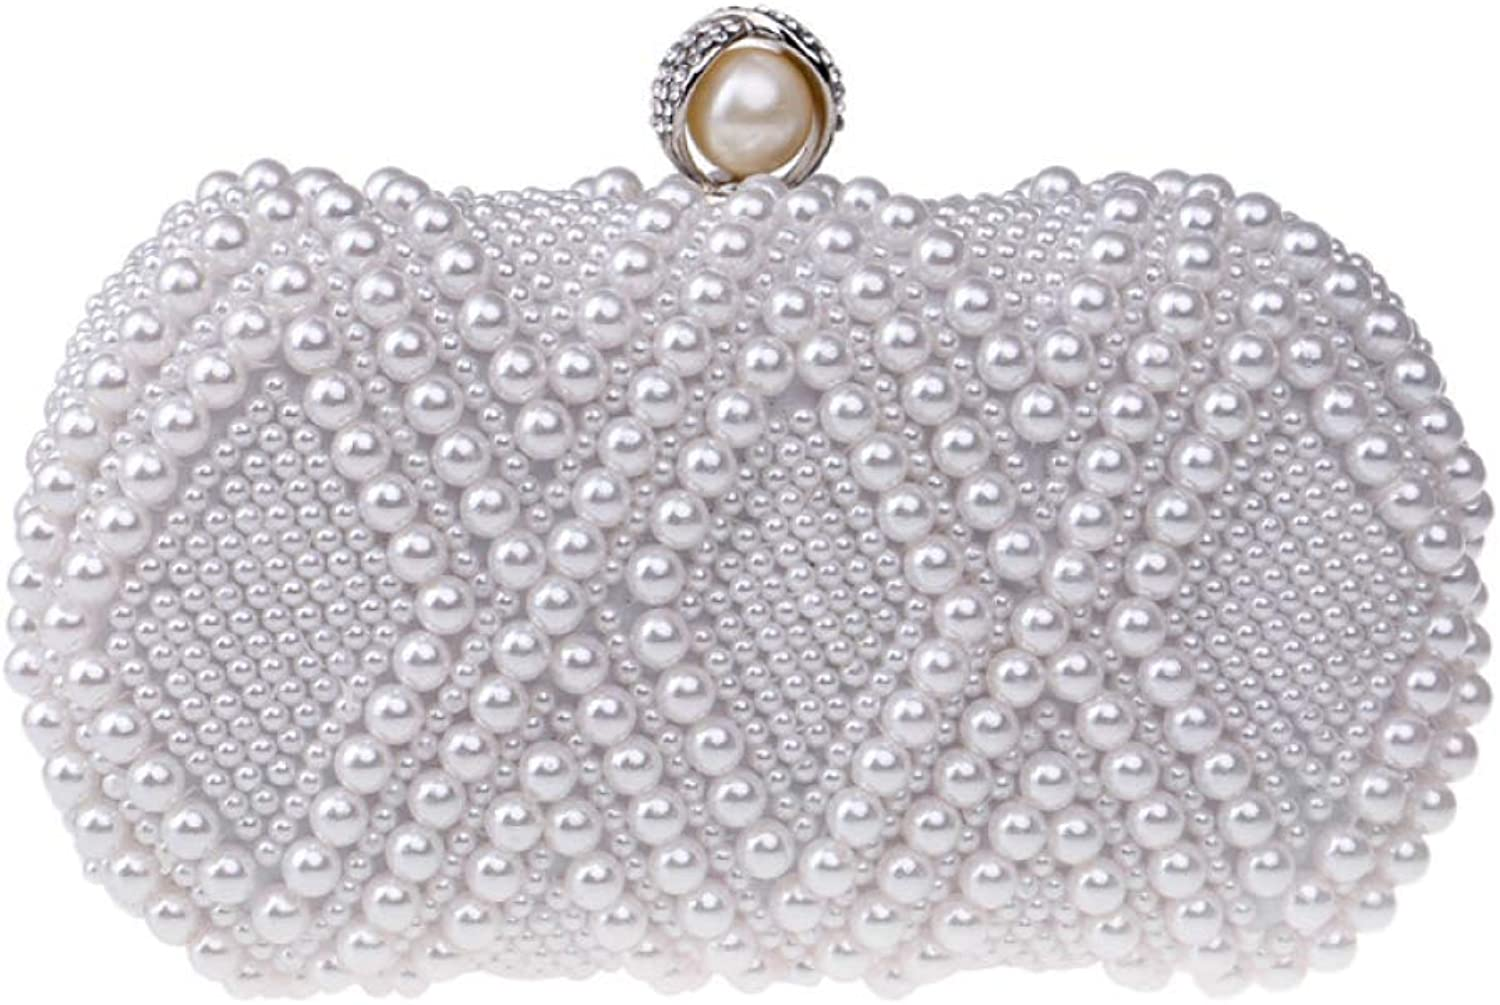 AKEY Clutch Bag Ladies Clutch Bag Glitter Handmade Pearl Beaded Dress Evening Bag Wedding Purse Party Prom Handbags Evening Bag for Bridal (color   White, Size   20106.5cm)